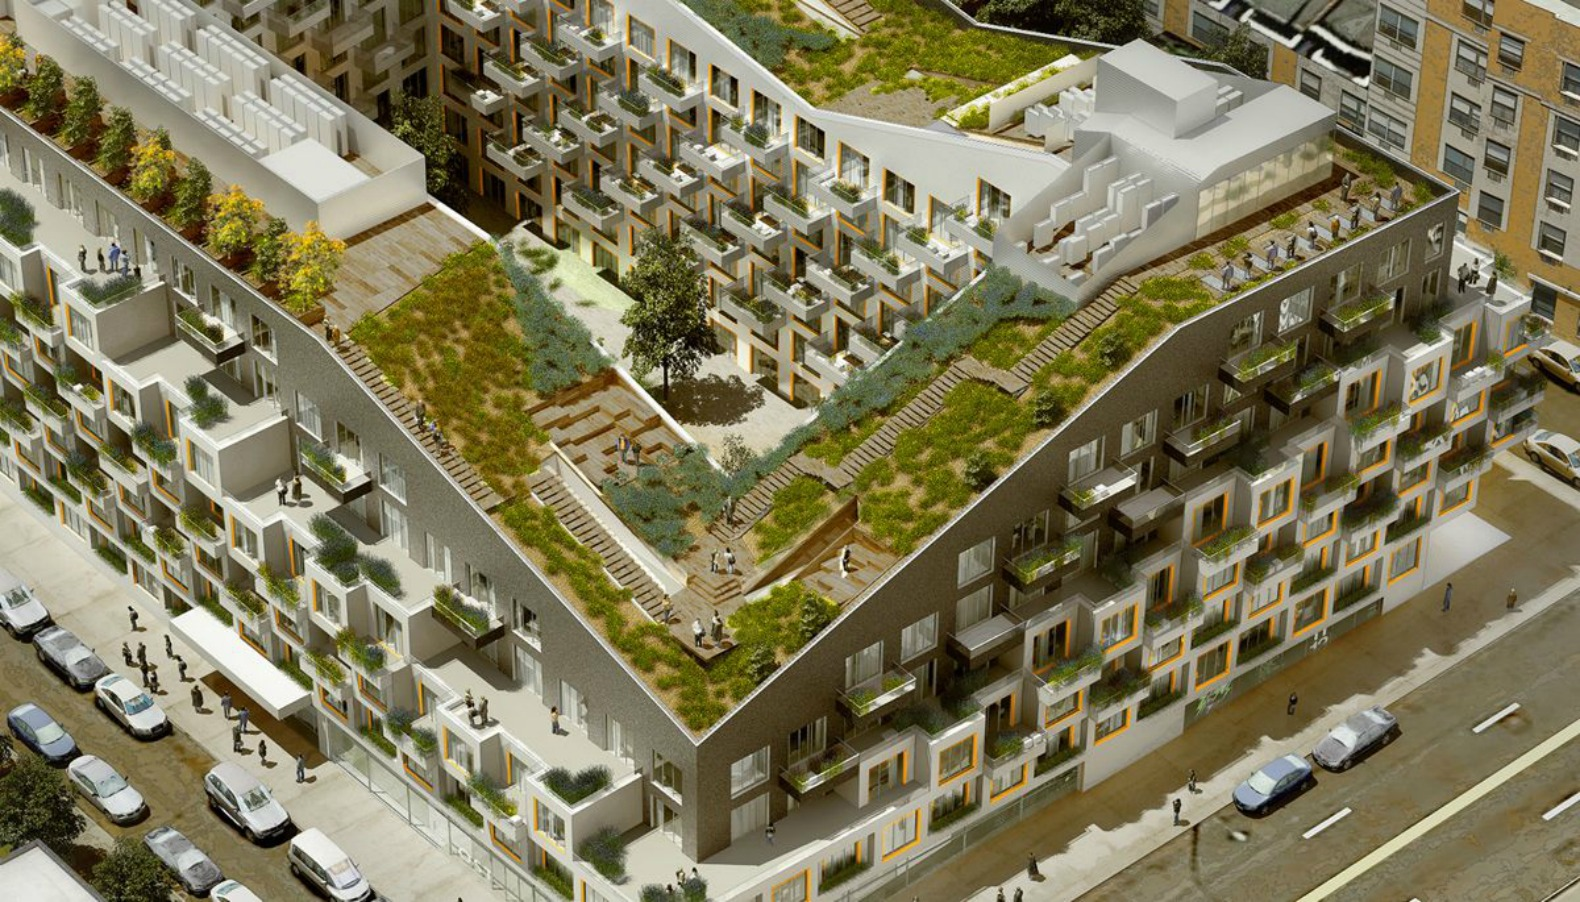 Green roofs inhabitat green design innovation for Whitespace architects careers